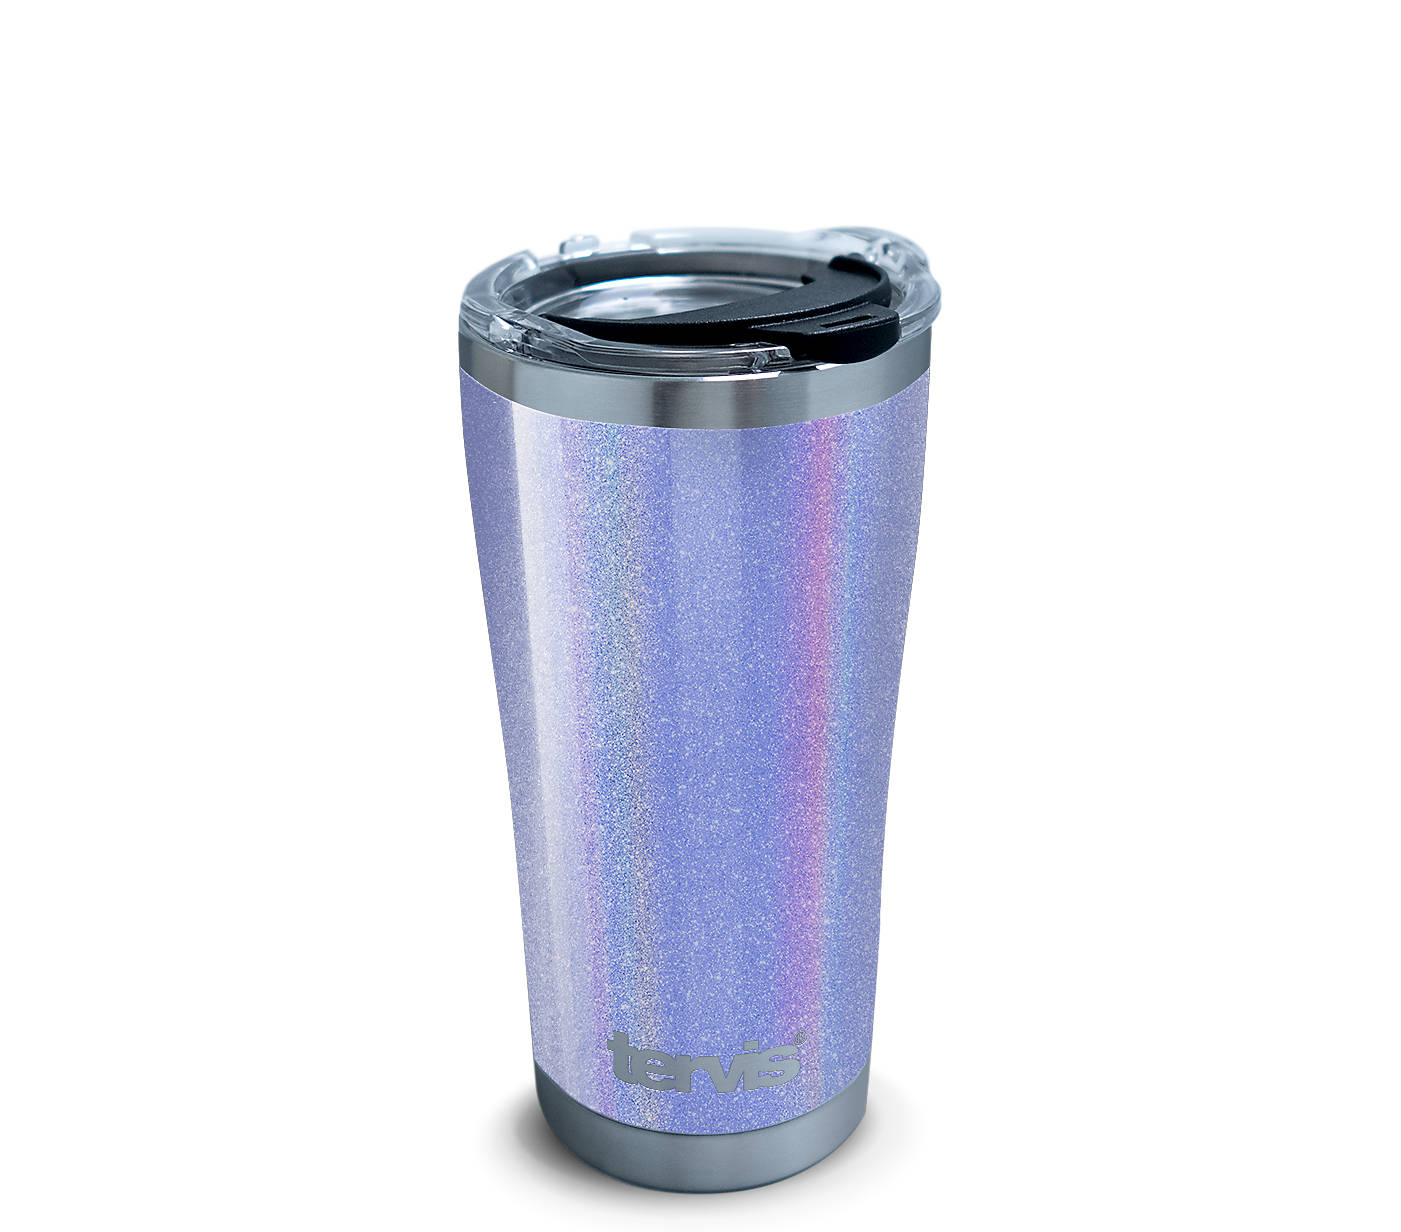 305d4788960 Shimmer Silver Violet Stainless Steel With Hammer Lid | Tervis ...